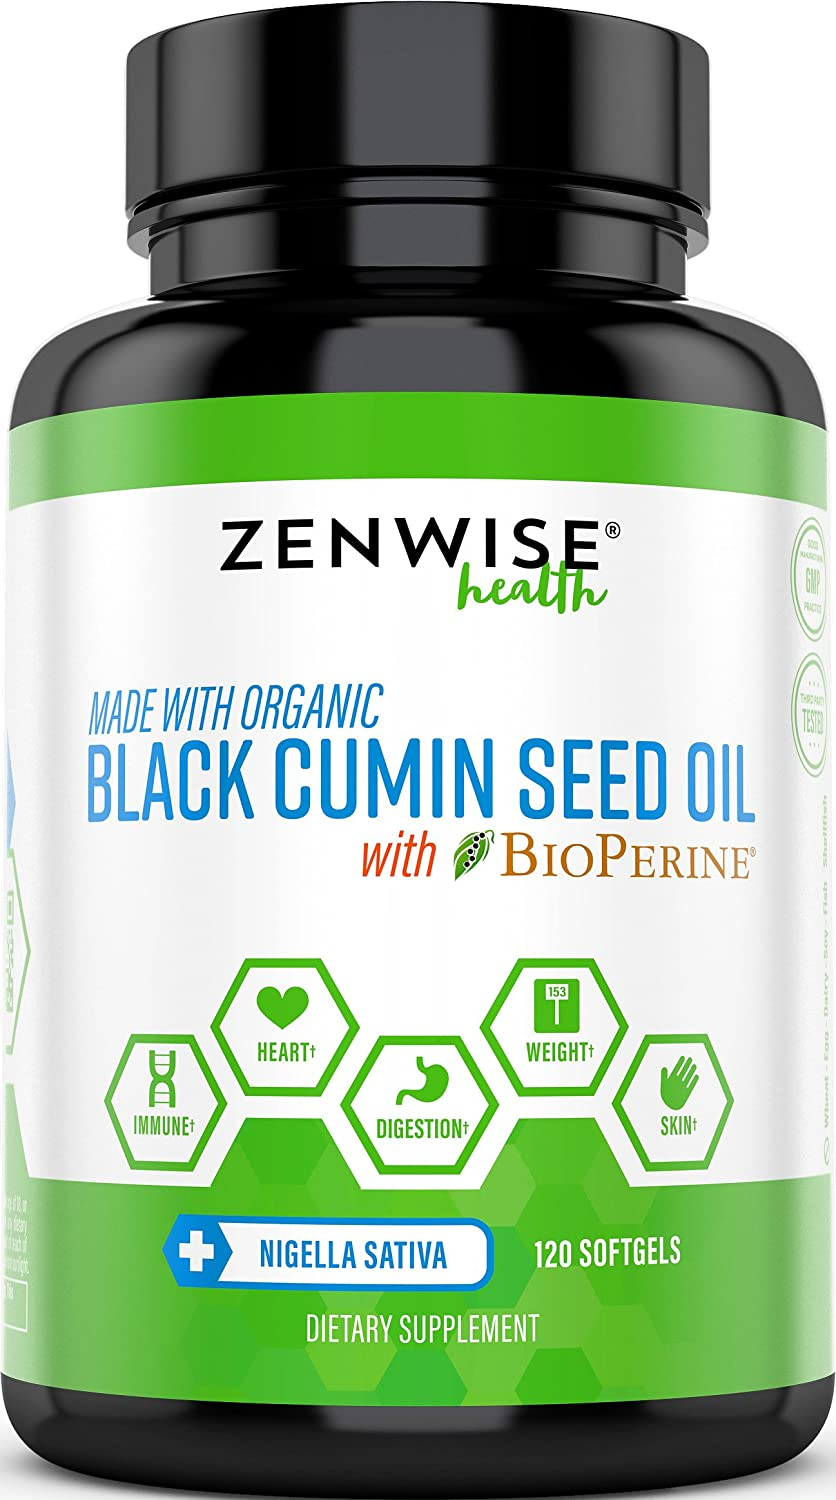 Black Cumin Seed Oil with BioPerine – Organic Cold Pressed with Omega 3 6 9 Fatty Acids – Antioxidant Immune System Booster – for Weight Loss Digestion Support – 120 Softgels